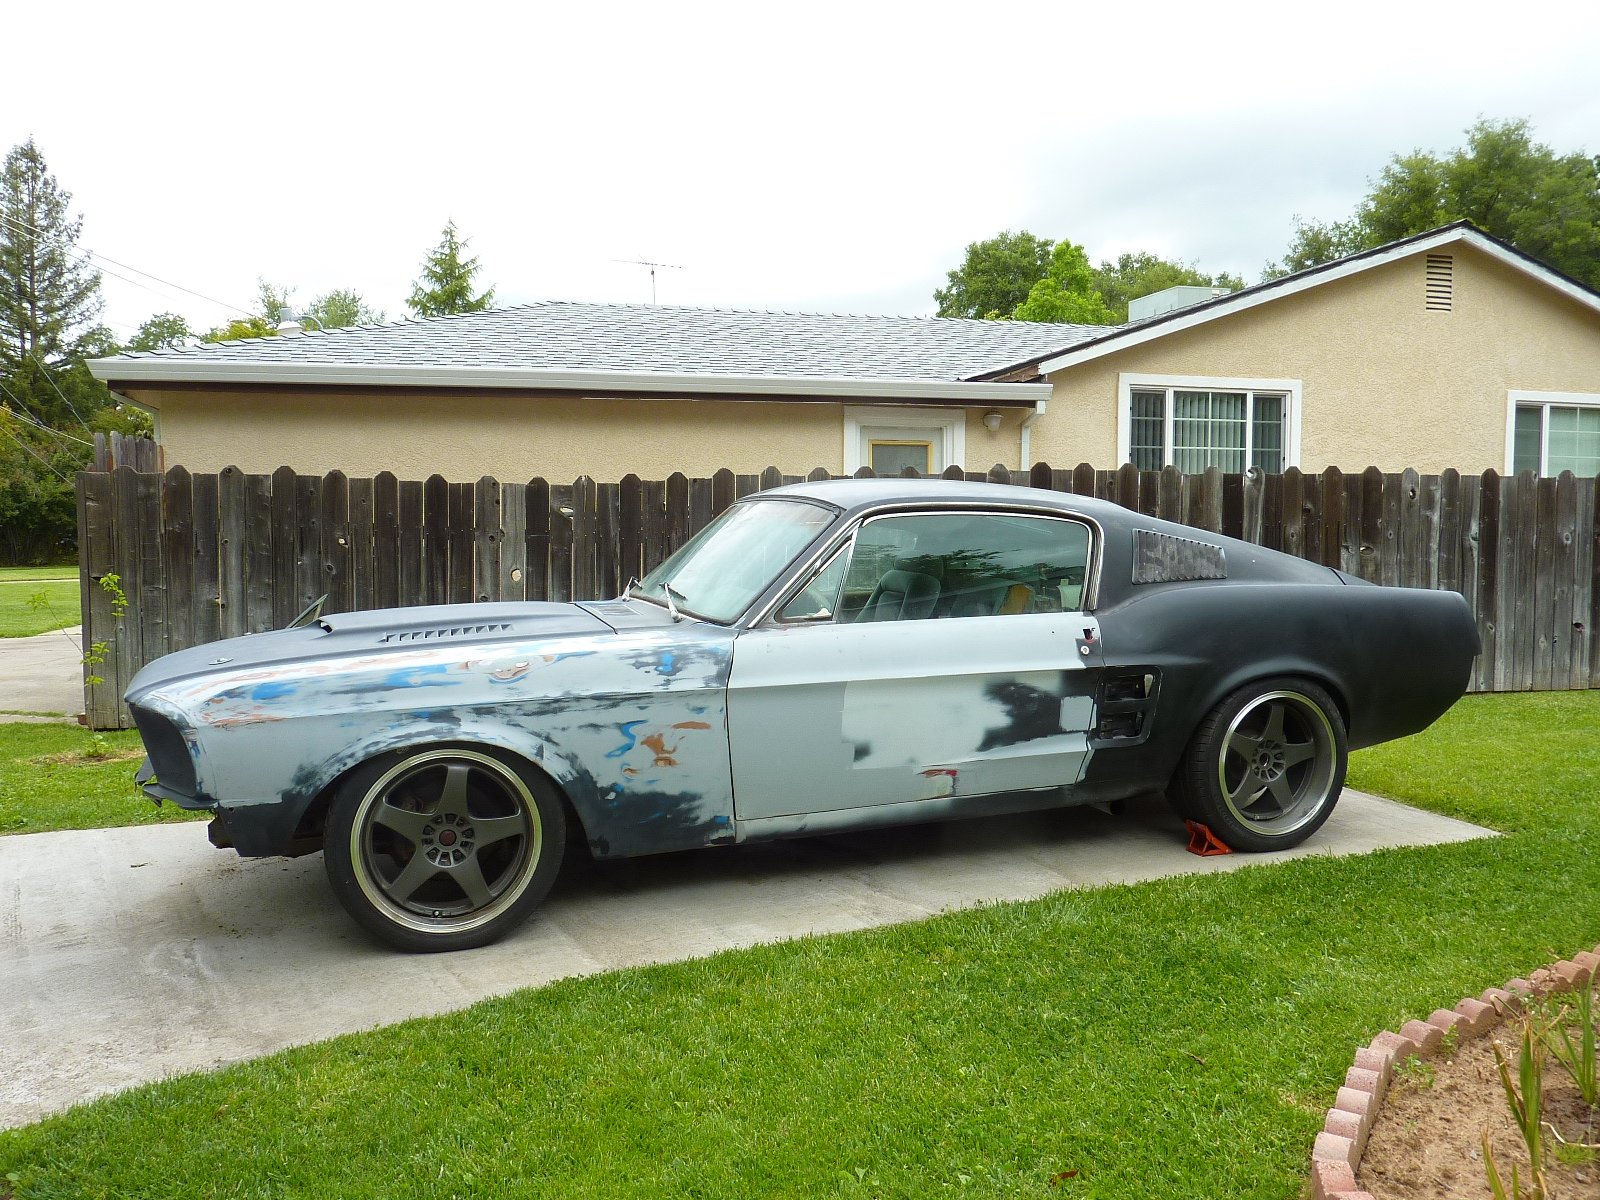 1967 mustang fastback project for sale craigslist – my delicate dots